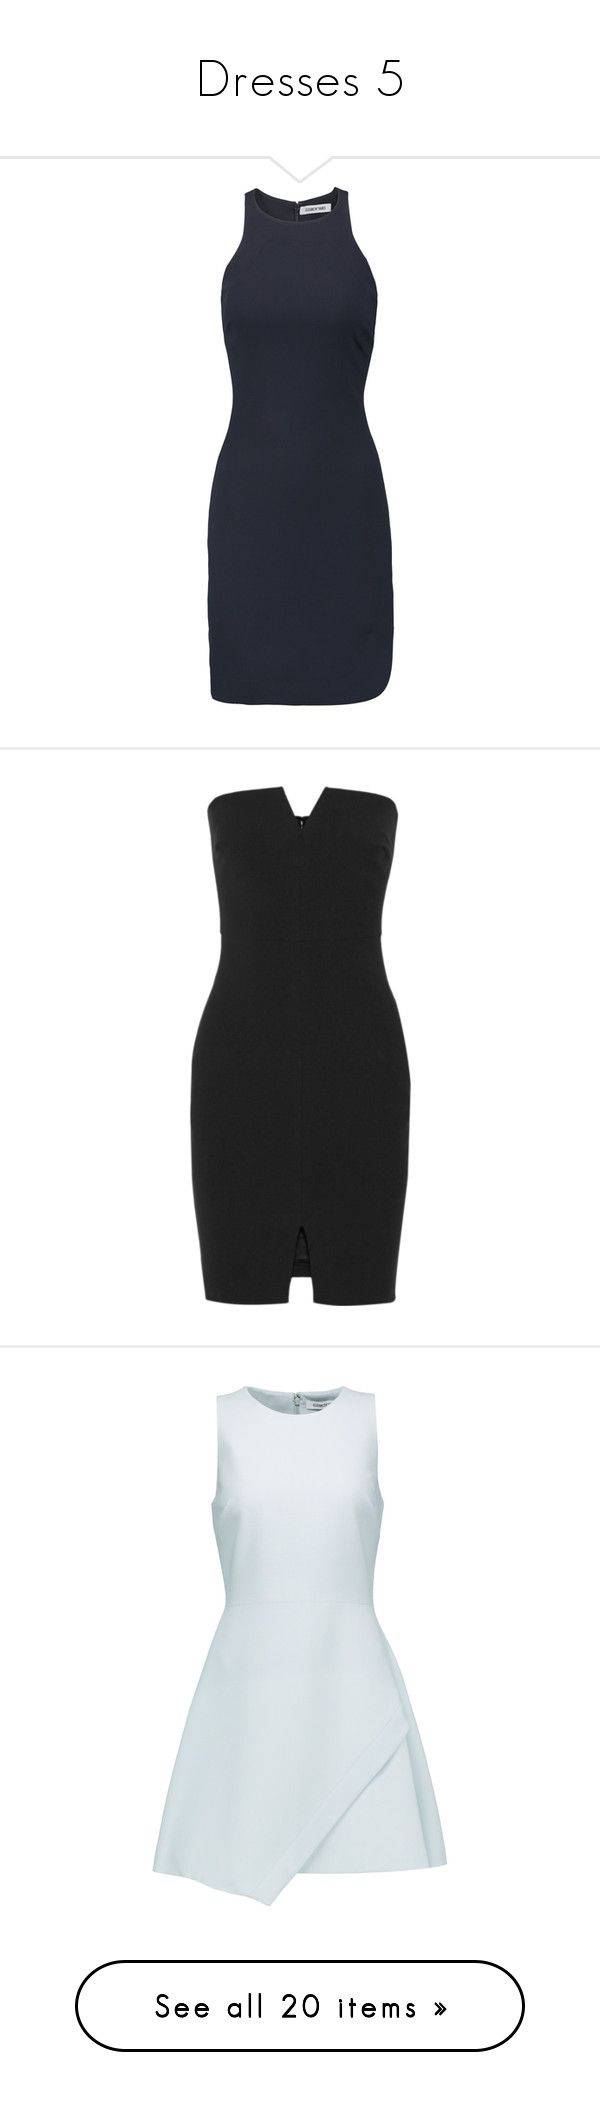 """""""Dresses 5"""" by vampirekitty34 ❤ liked on Polyvore featuring dresses, midnight blue, fitted dresses, boyfriend dress, fitted wrap dress, short dresses, slouchy dress, black, chiffon dresses and front slit dress"""